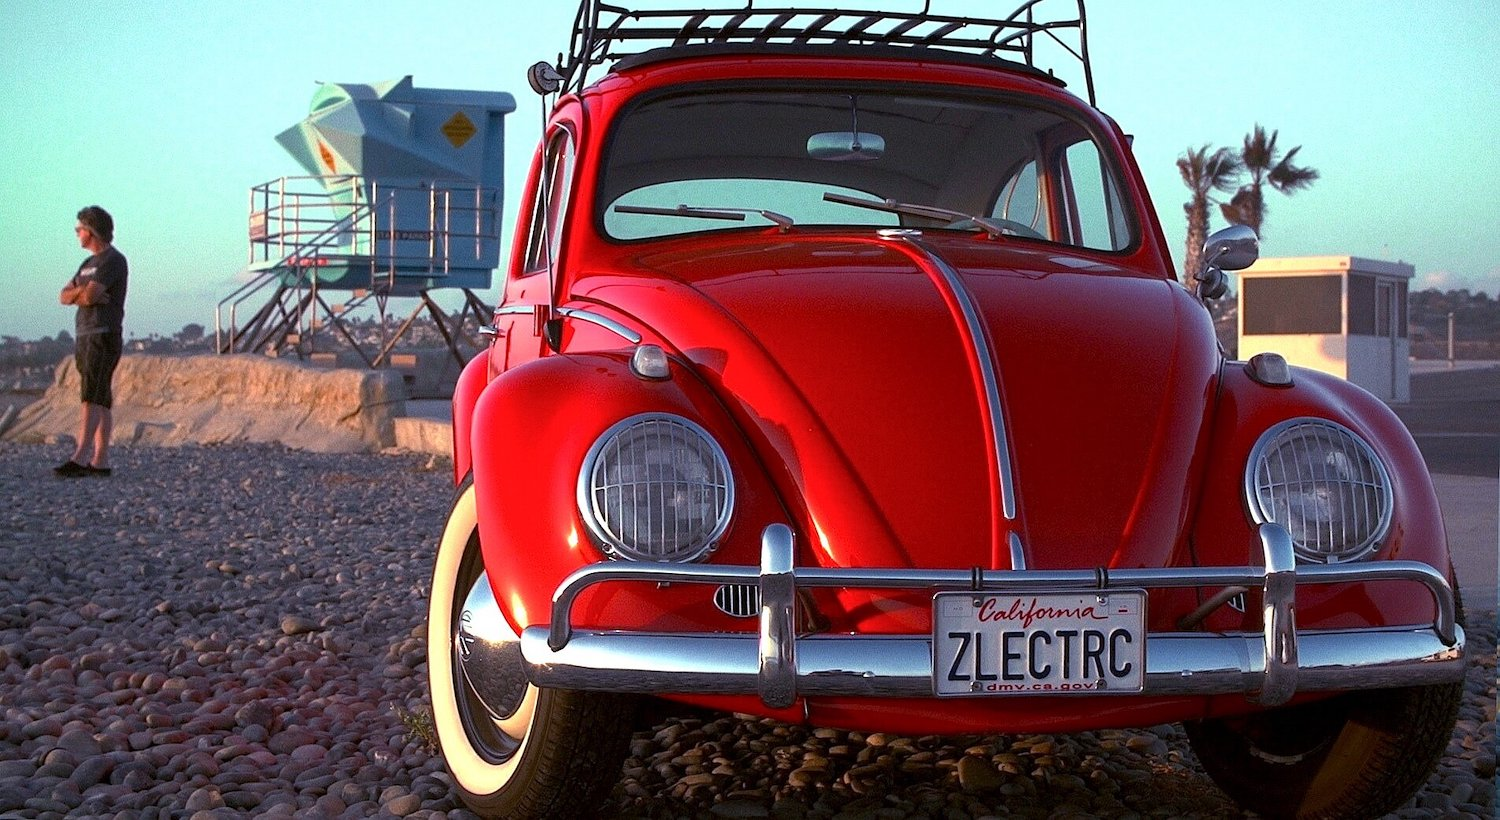 Zelectric Bug